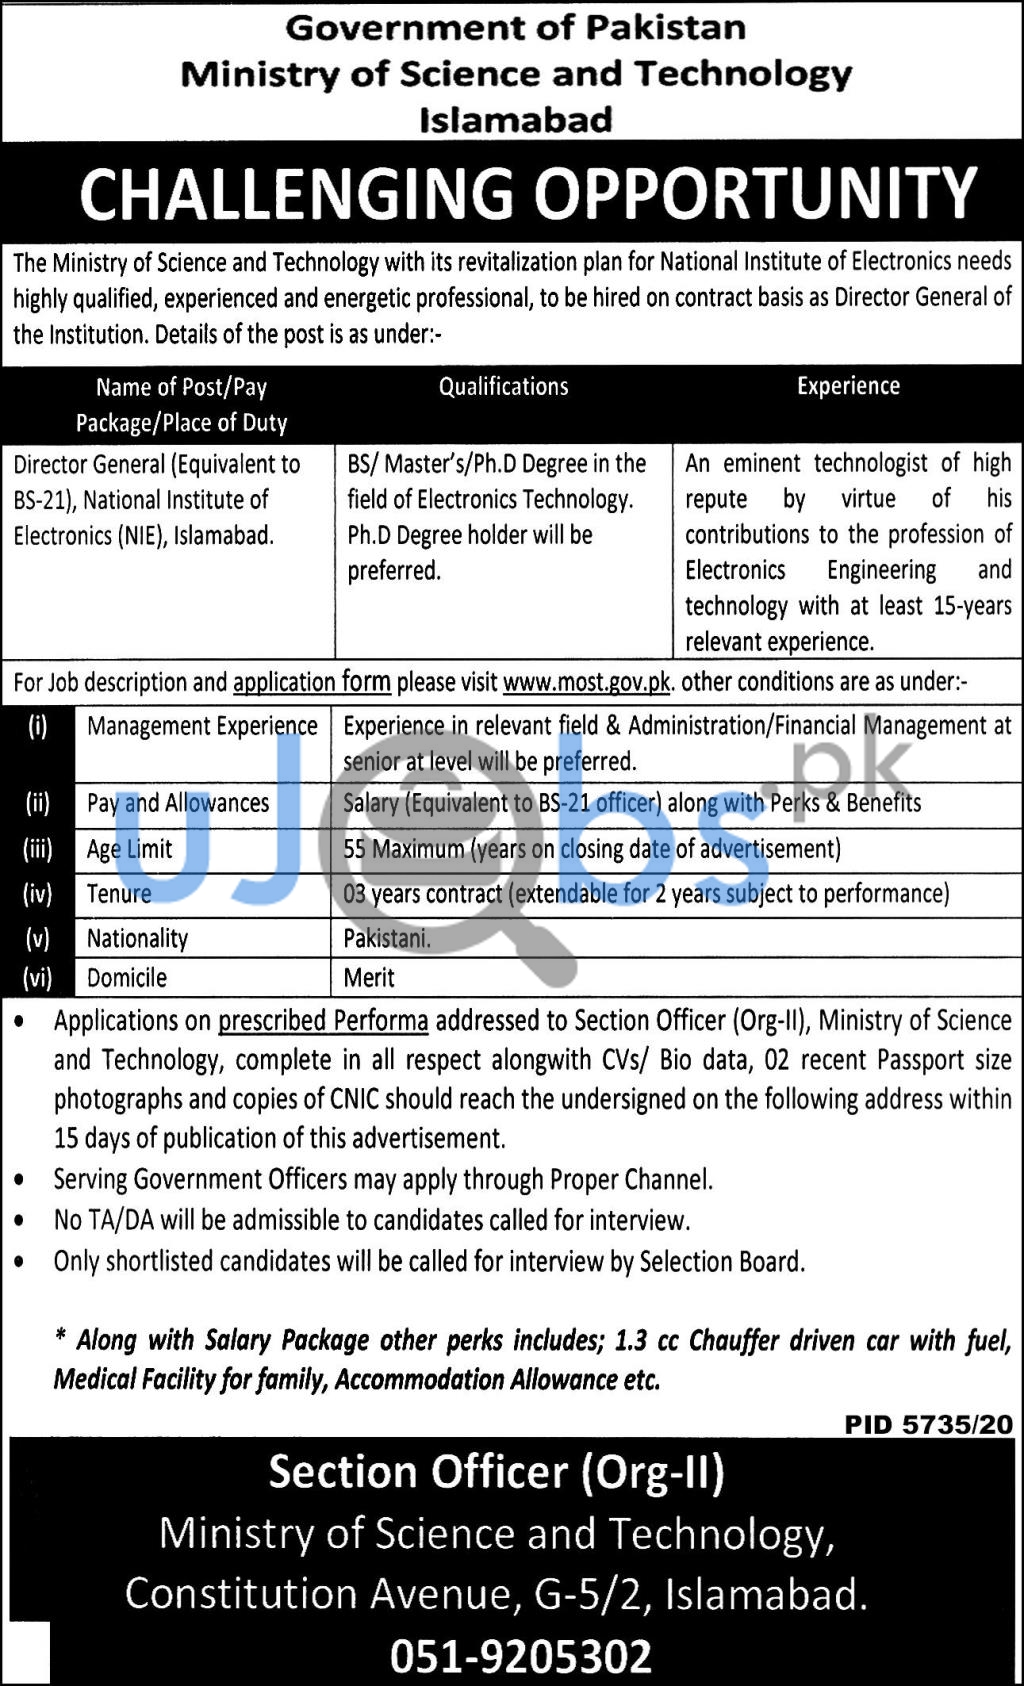 Ministry of Science and Technology Islamabad Jobs April 2021 For Director General